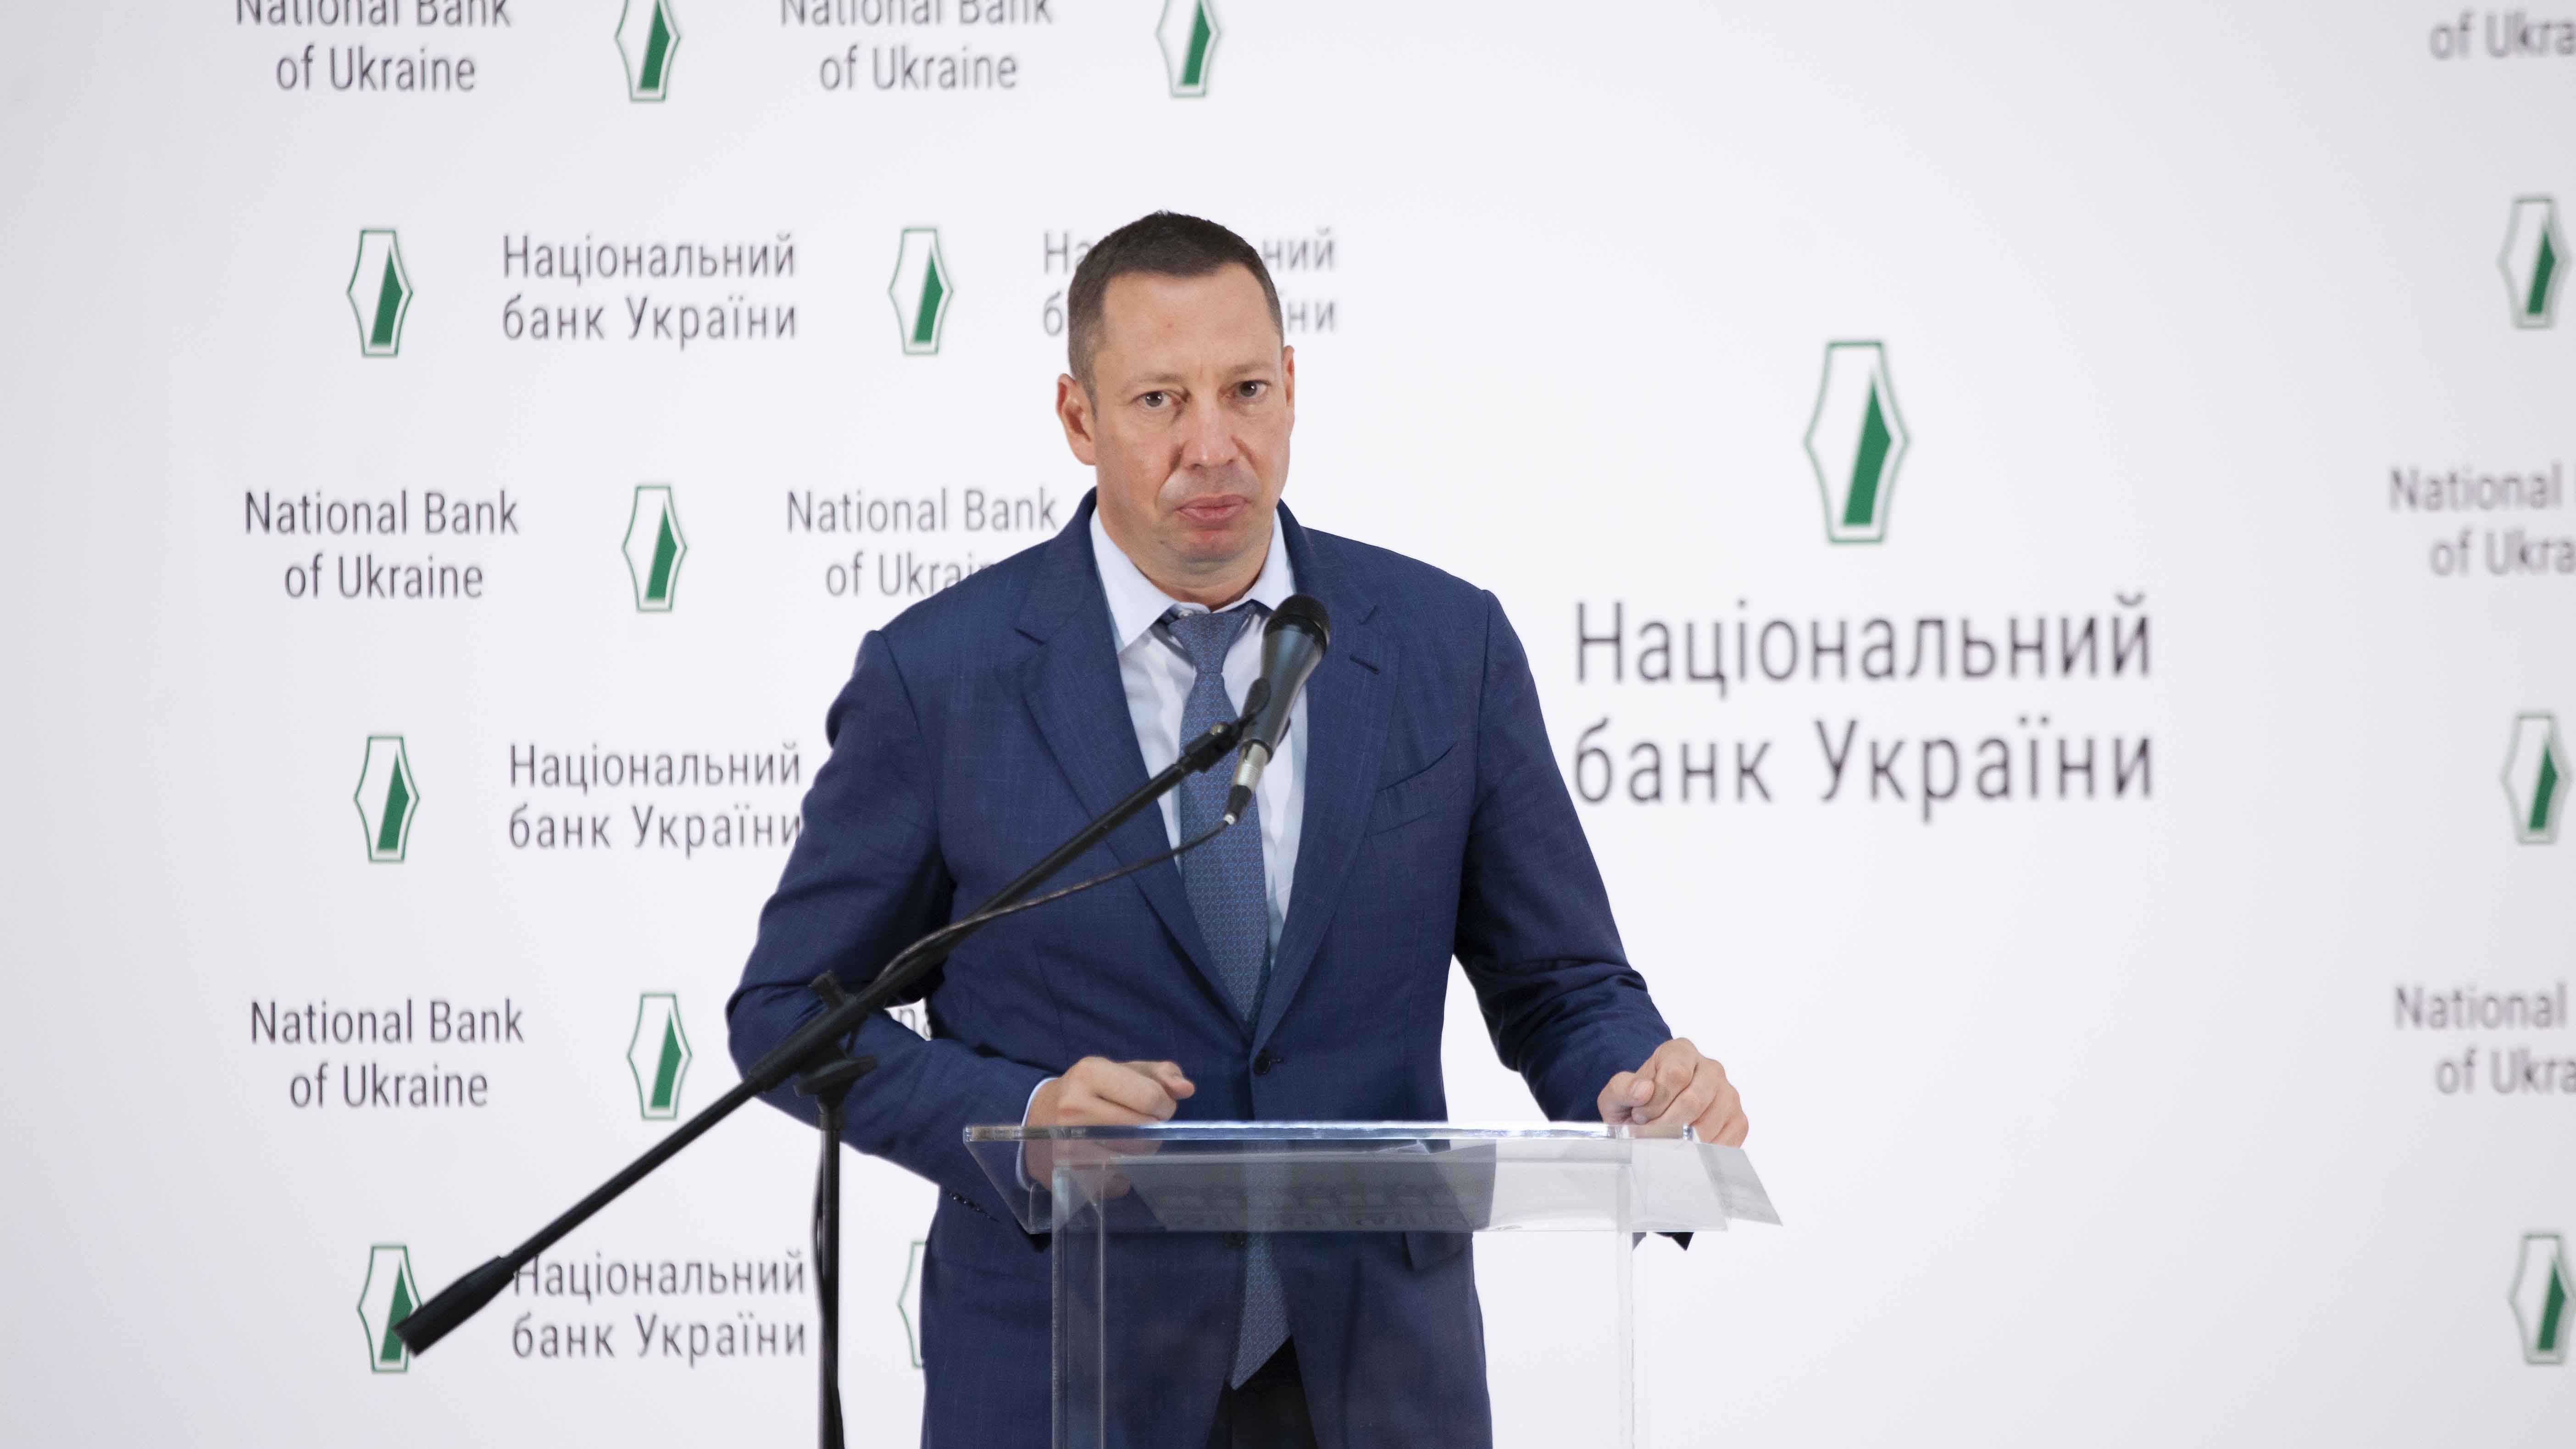 Speech by the NBU Governor Kyrylo Shevchenko at a press briefing